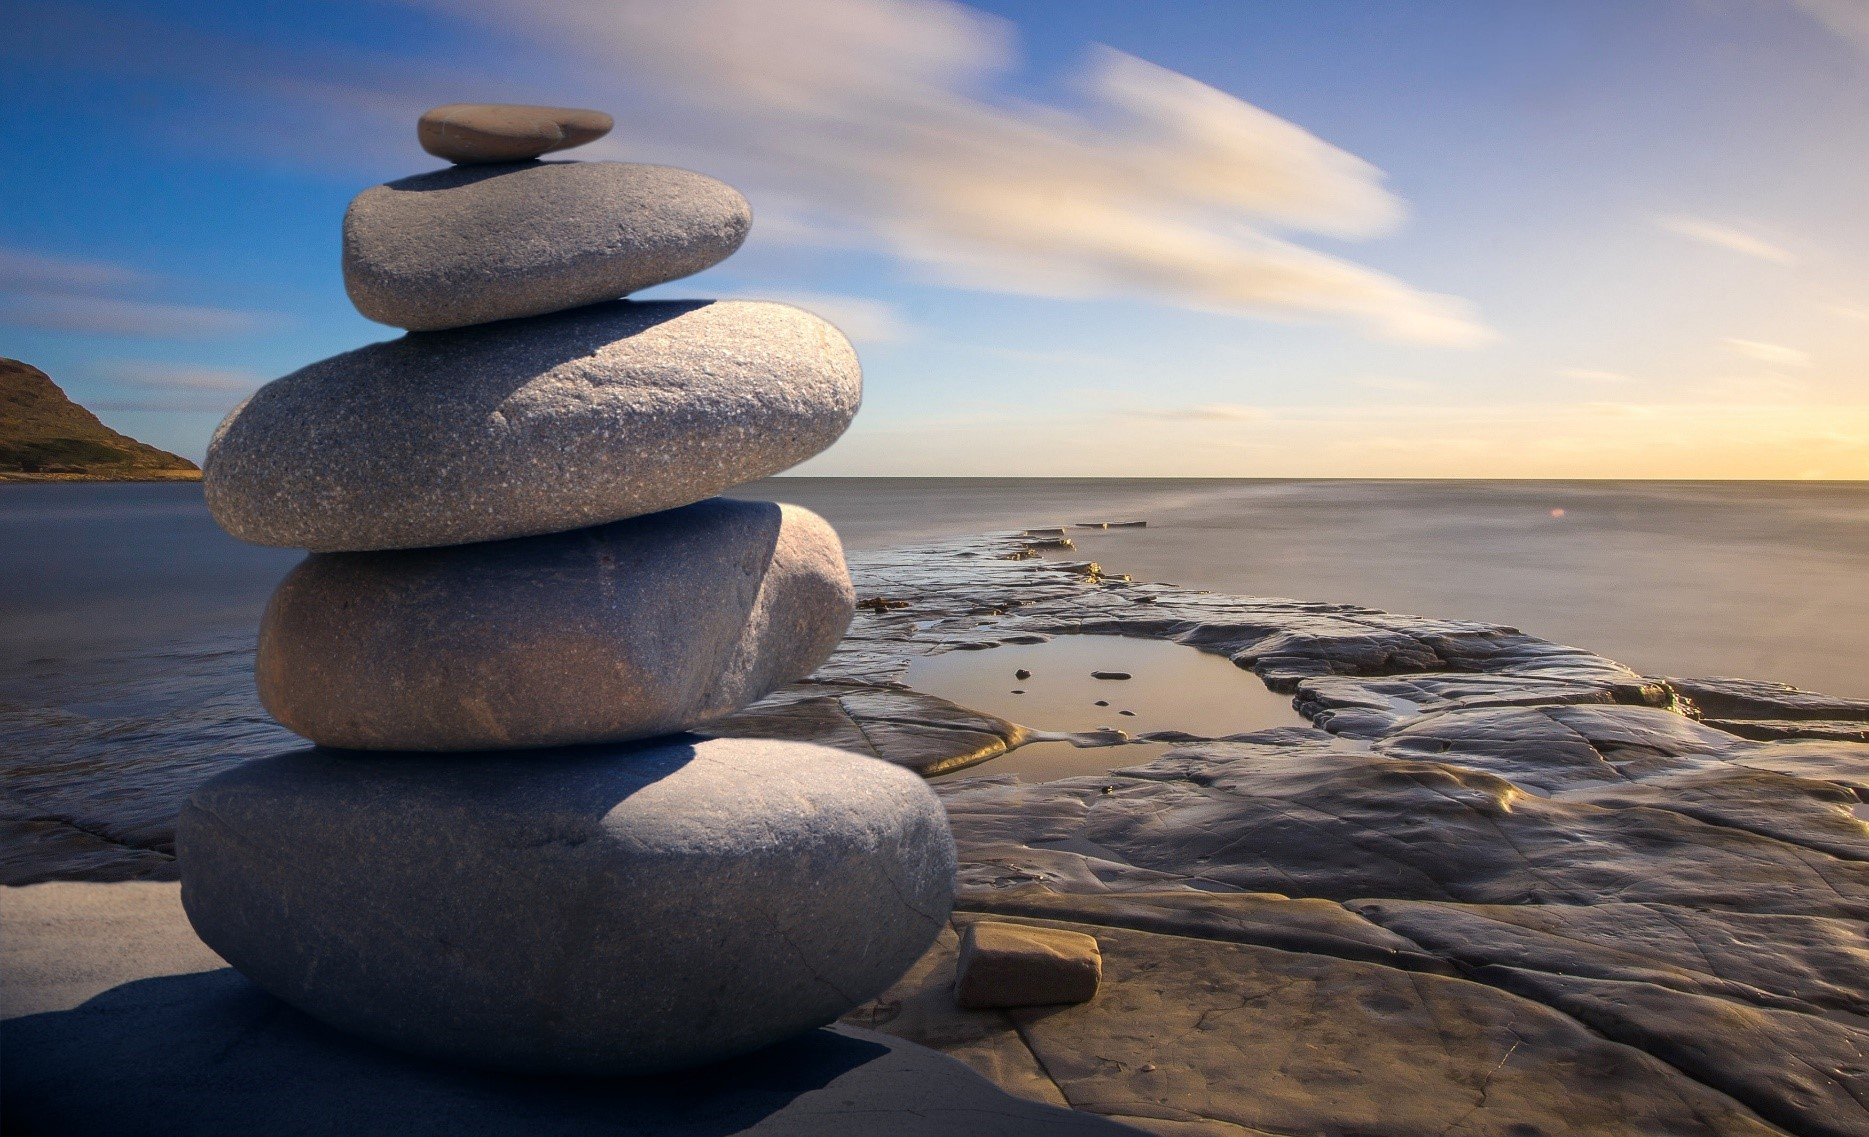 soothing image of rock pile and water